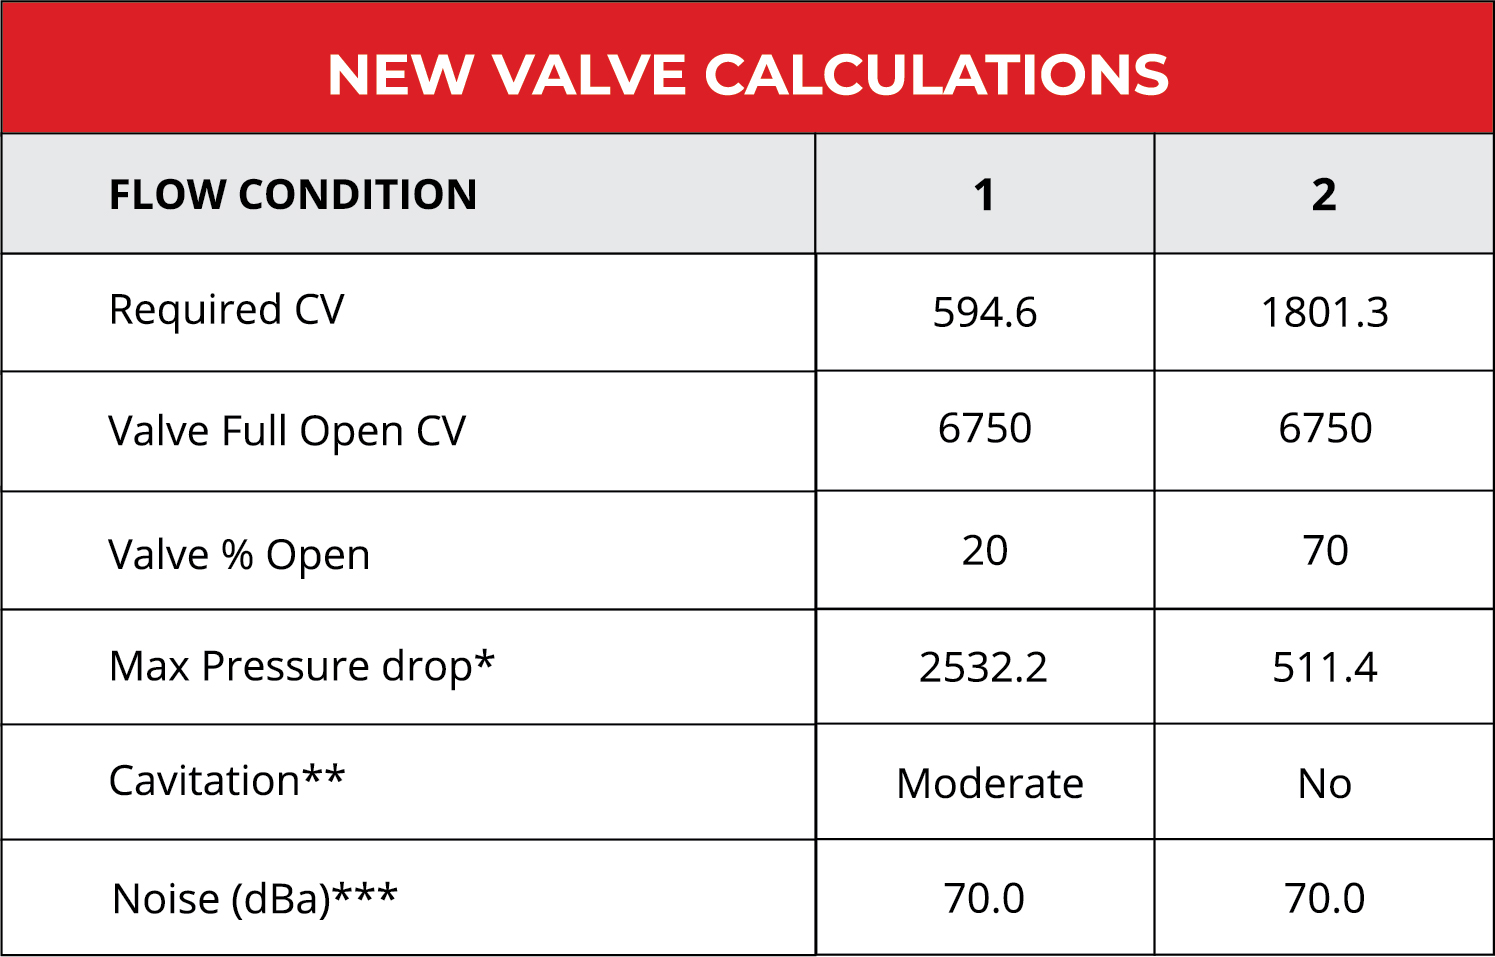 New valve calculations after installing a new custom SlurryFlo seat plate trim design.